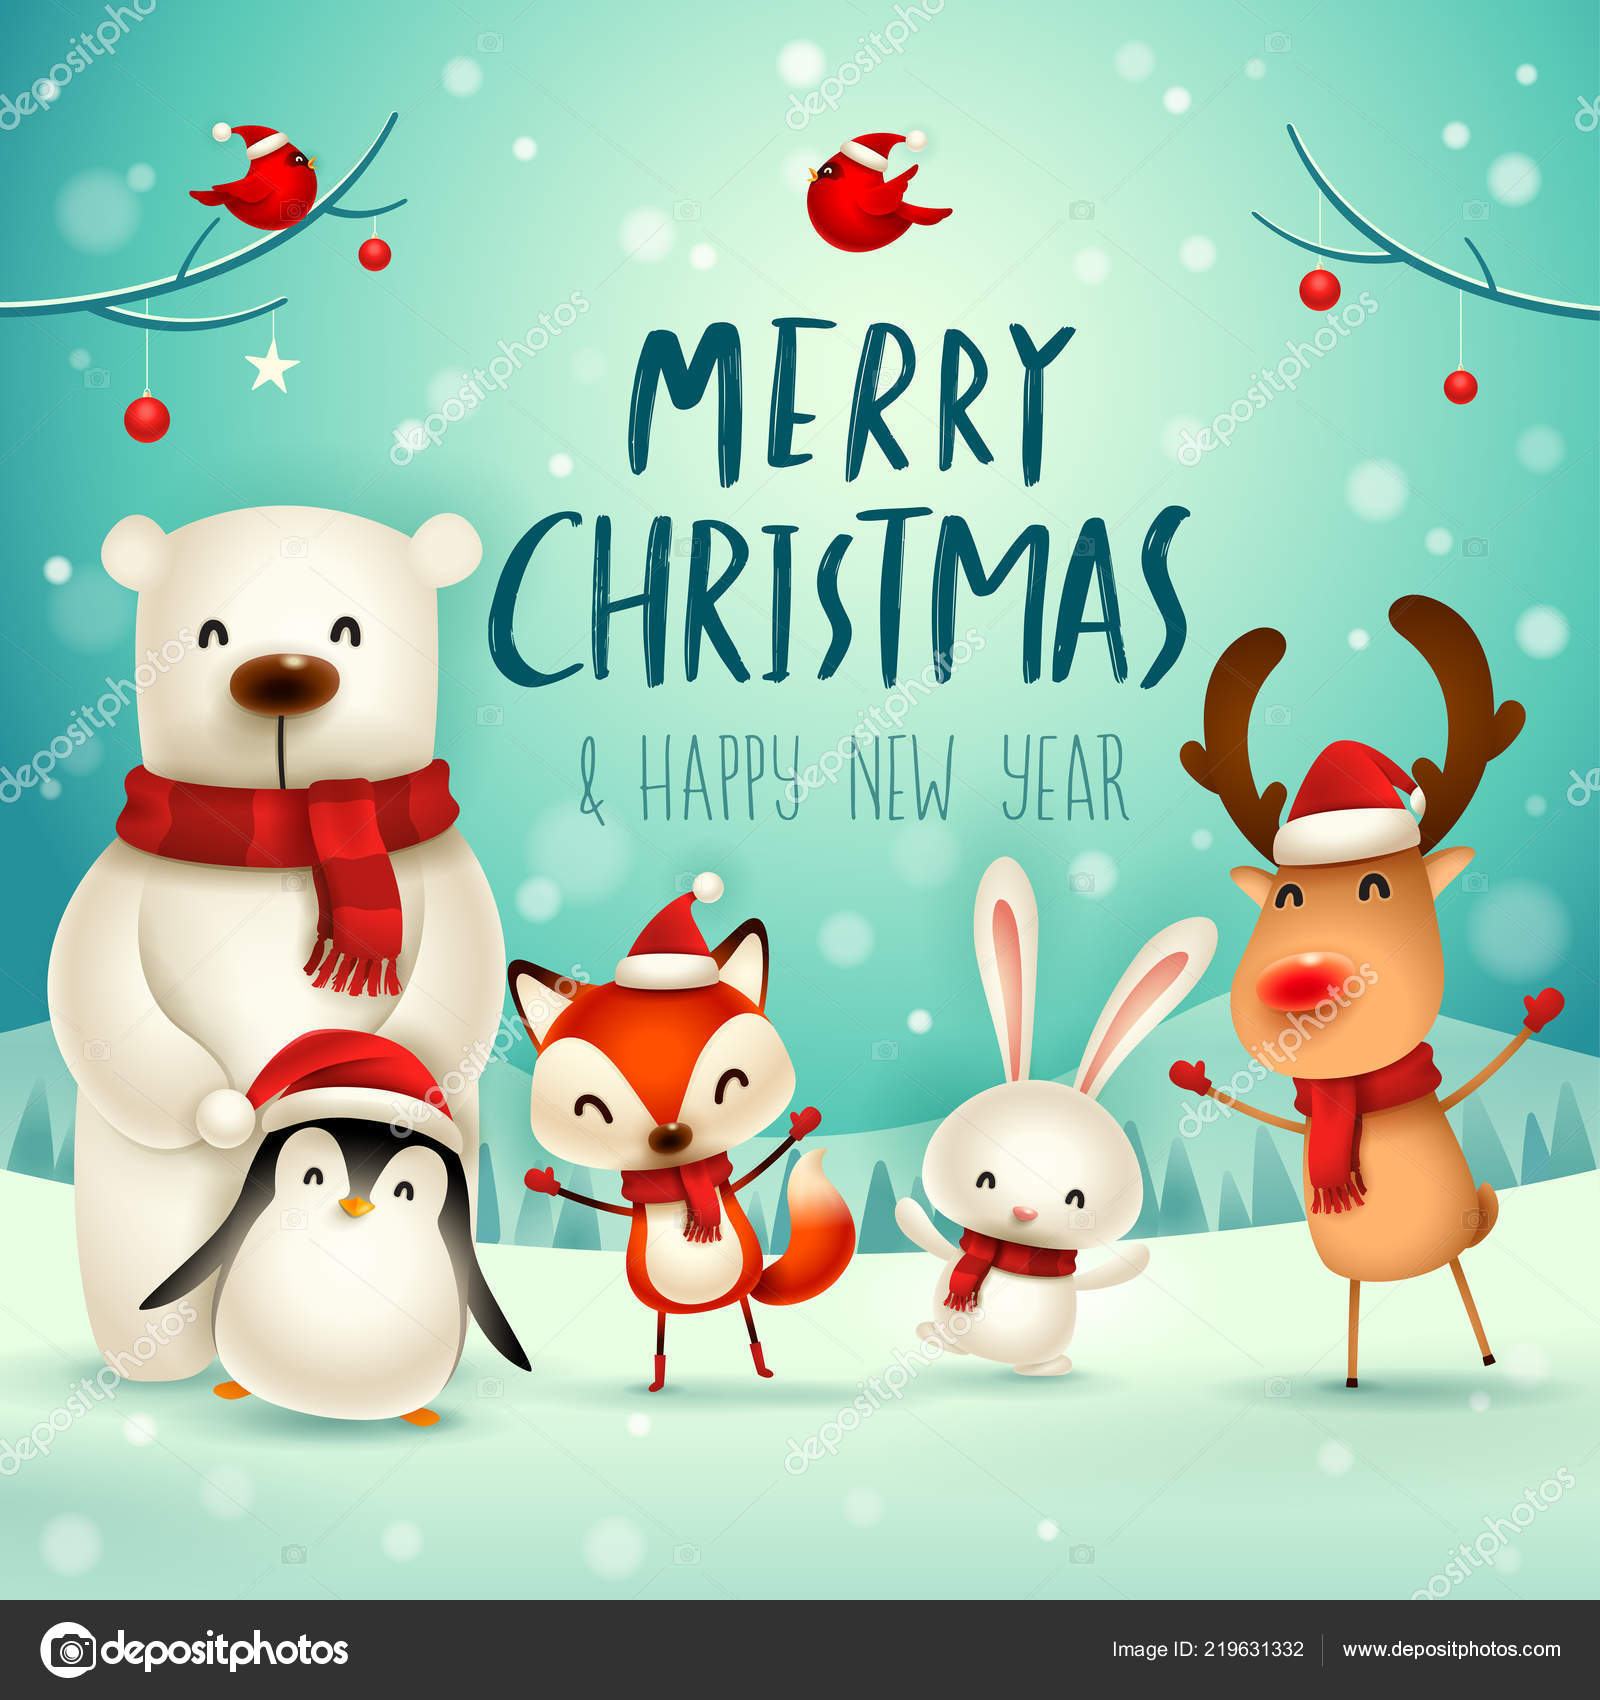 Merry Christmas Animals.Merry Christmas Happy New Year Christmas Cute Animals Character